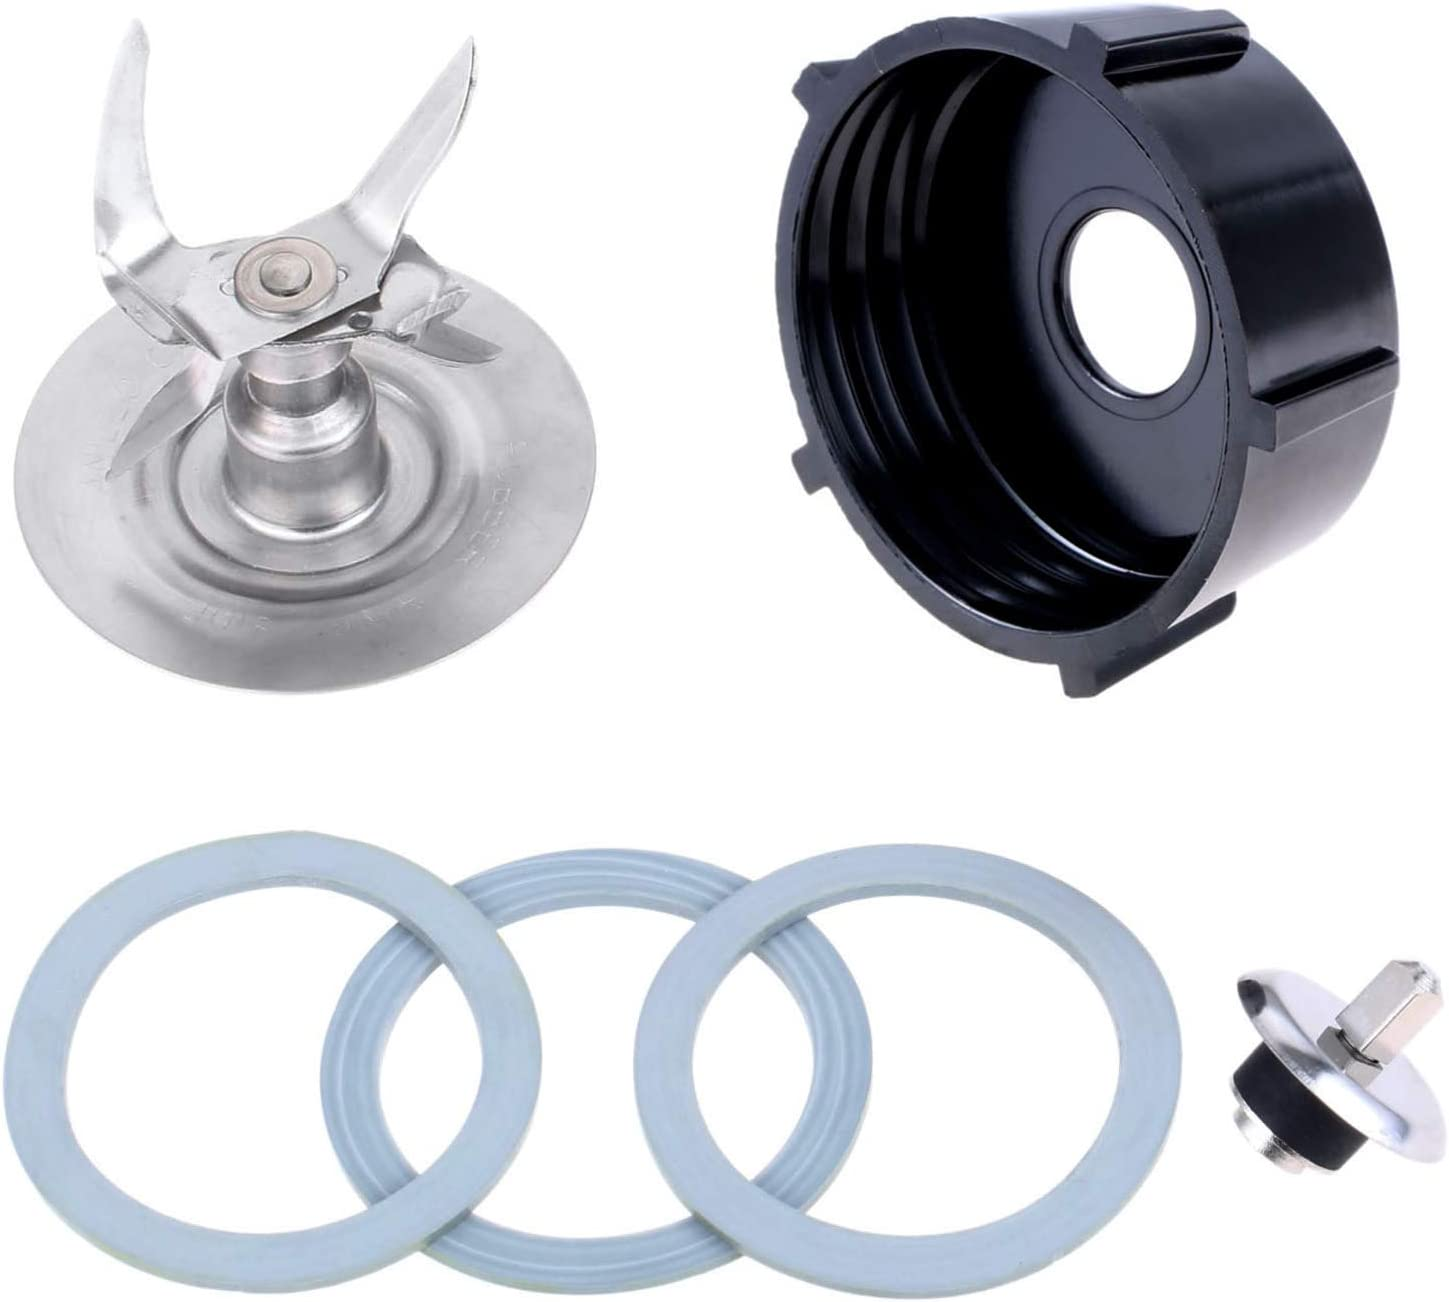 Replacement Parts Oster Blender Ice Blades with Bottom Cap Rubber O-Ring Gaskets Coupling Stud Slinger Pin Kit, Compatible with Oster 5 & 6 Cup Glass (6 PCS)